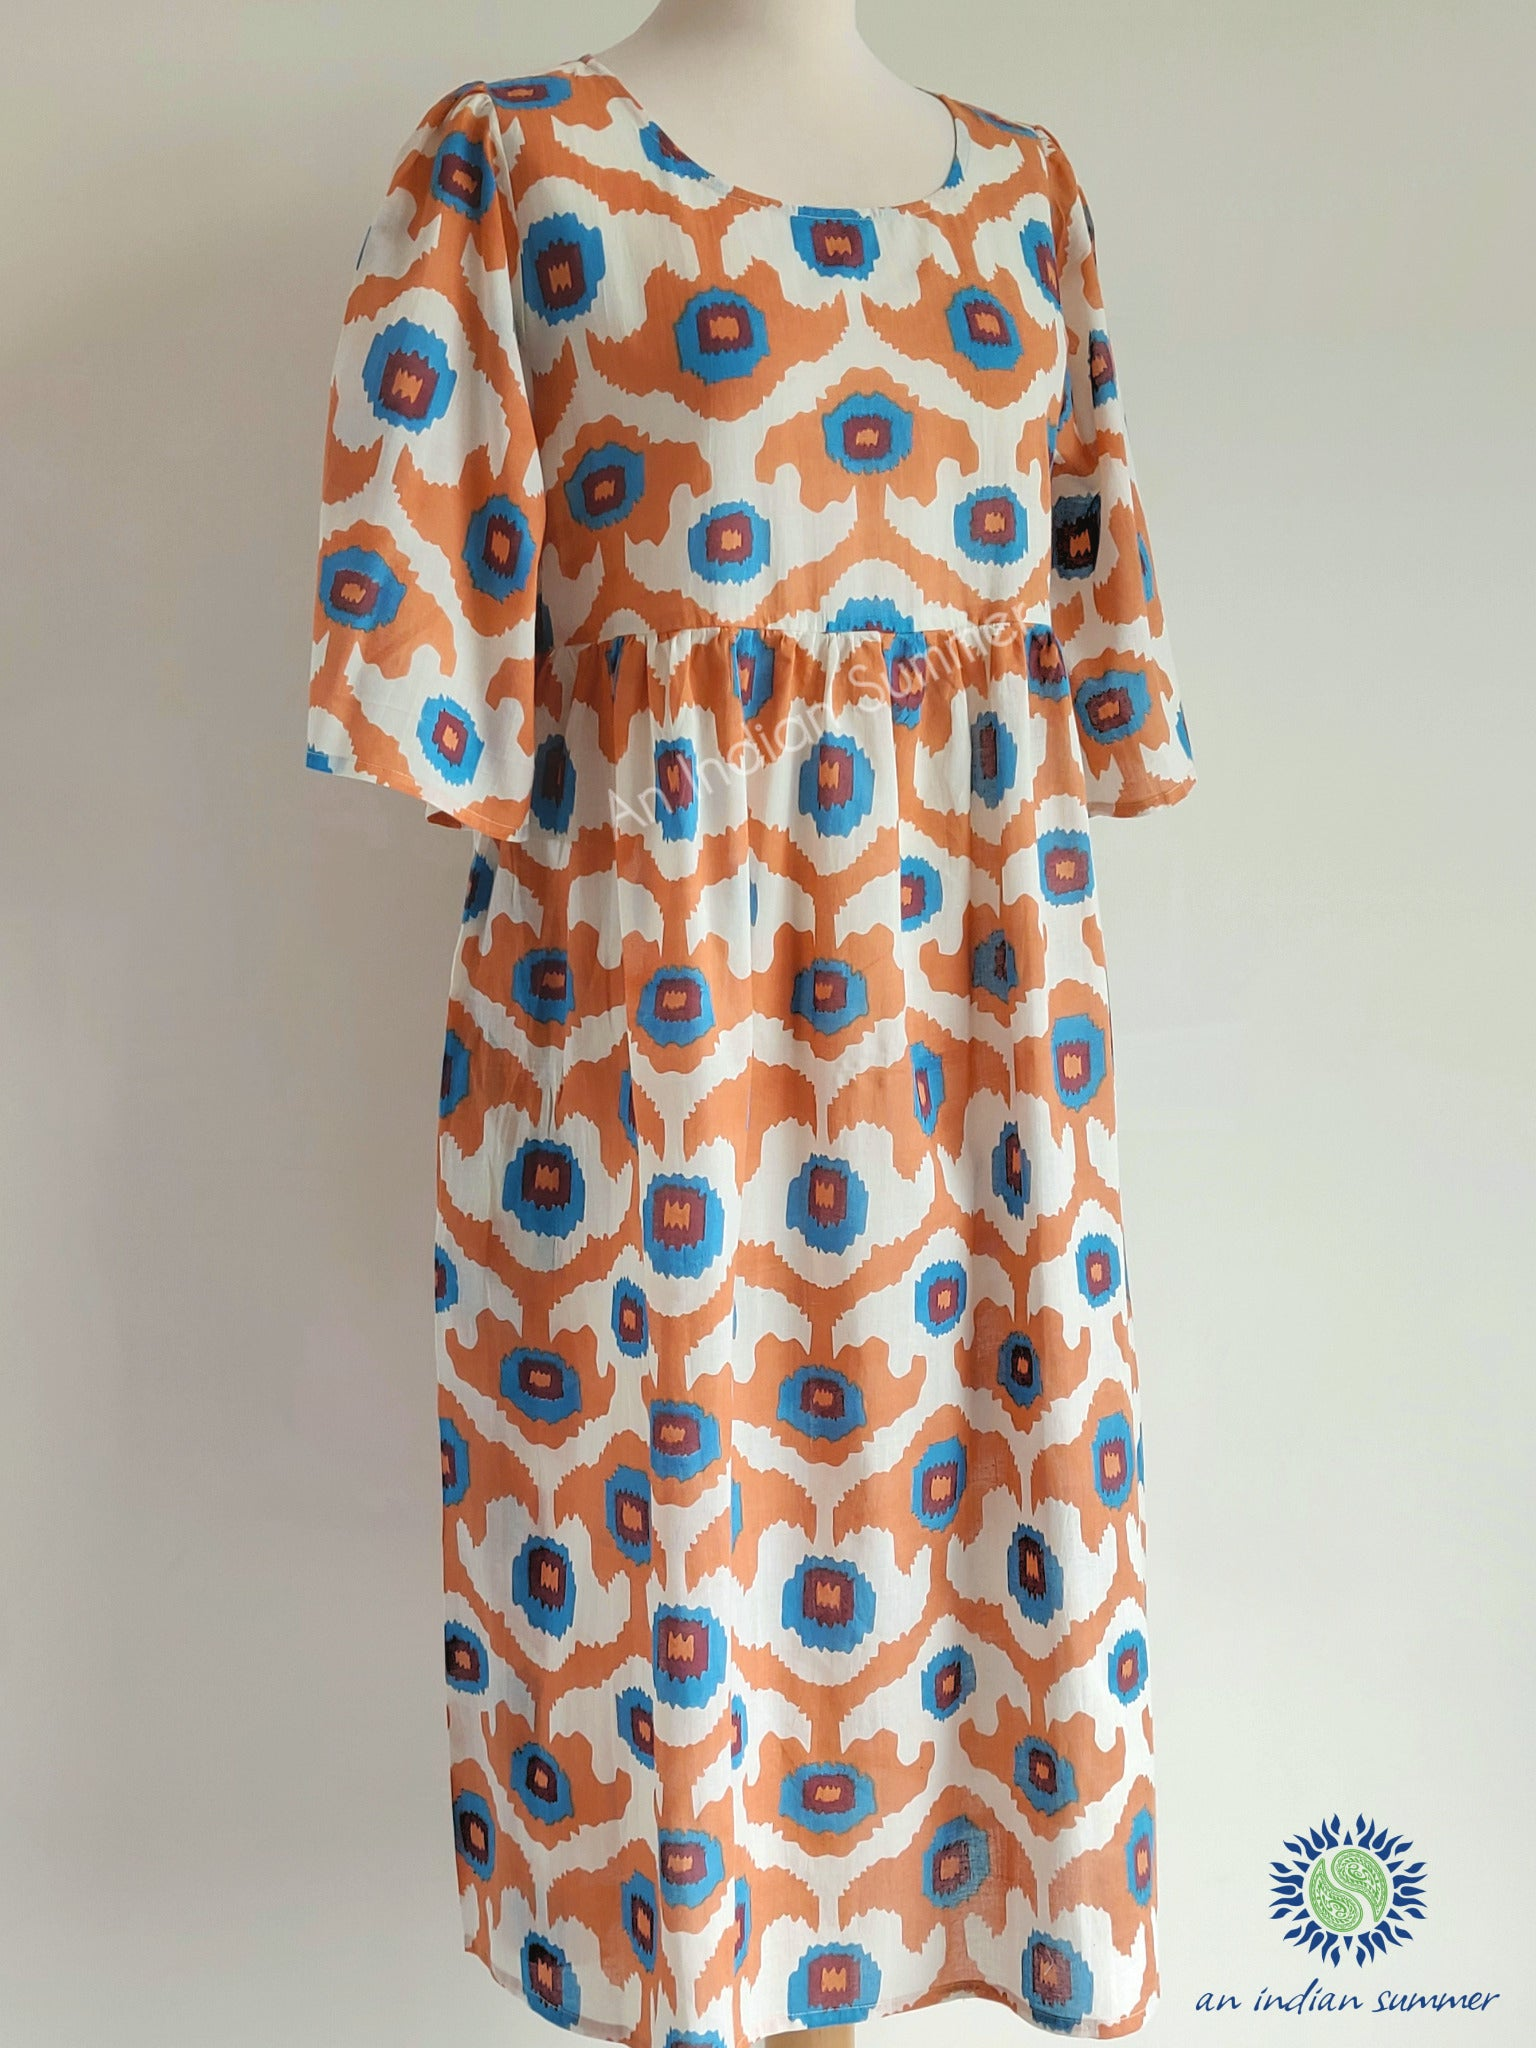 Oversized Market Dress Ikat Apricot Comfy easy-fit lightweight cotton dress with Two deep pockets An Indian Summer Timeless Sustainable Ethical Authentic Artisan Clothing Brand